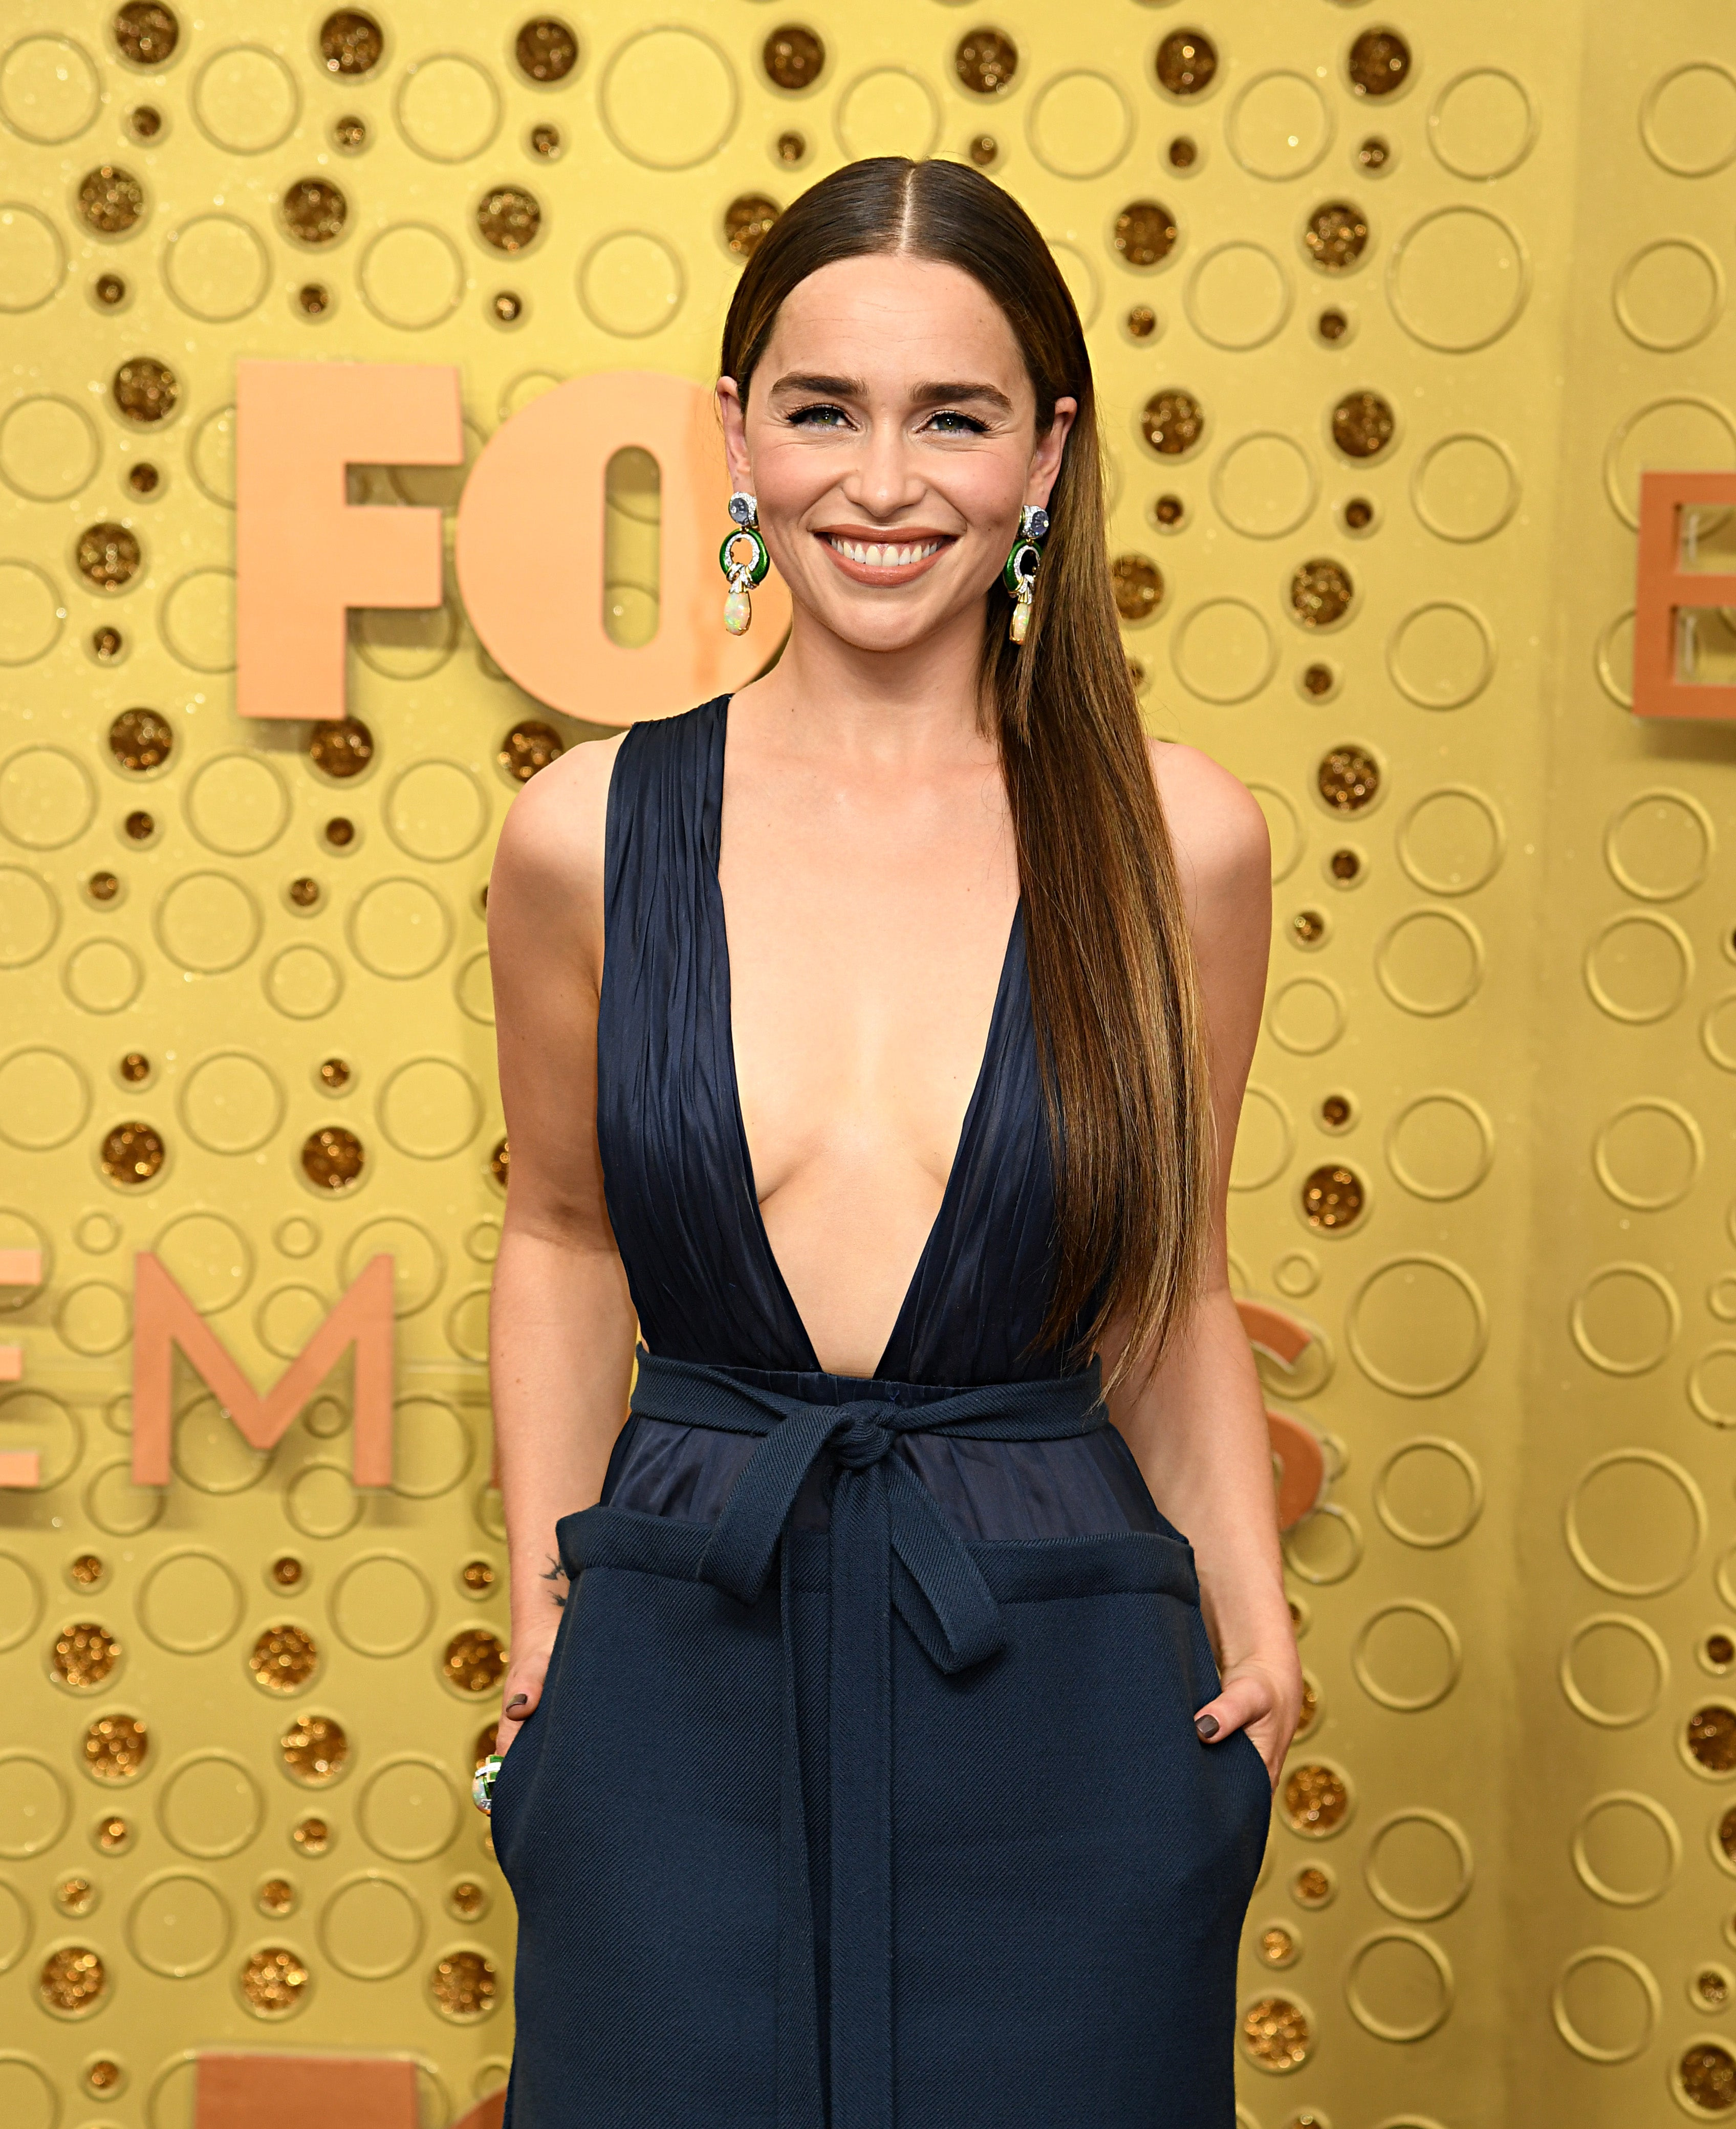 Emilia Clarke Debuted A Brand-New Tattoo Last Night At The Emmys